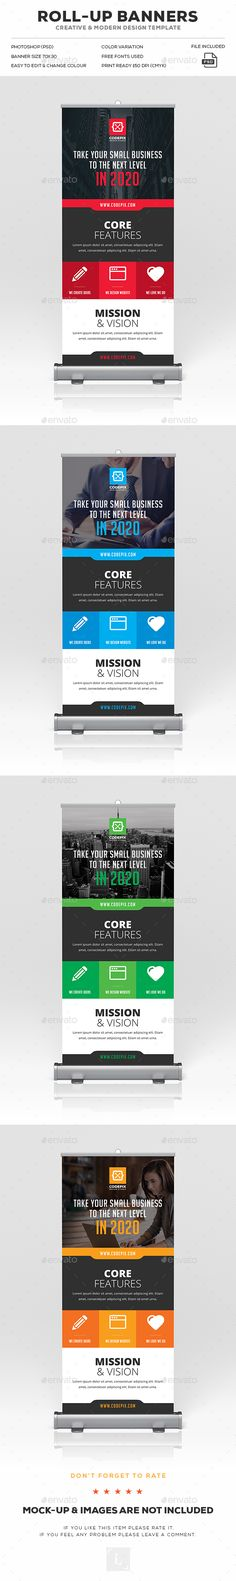 Roll-Up Banner Ads Design Template - Signage Print Template PSD. Download here: https://graphicriver.net/item/rollup-banner/17029771?s_rank=3&ref=yinkira